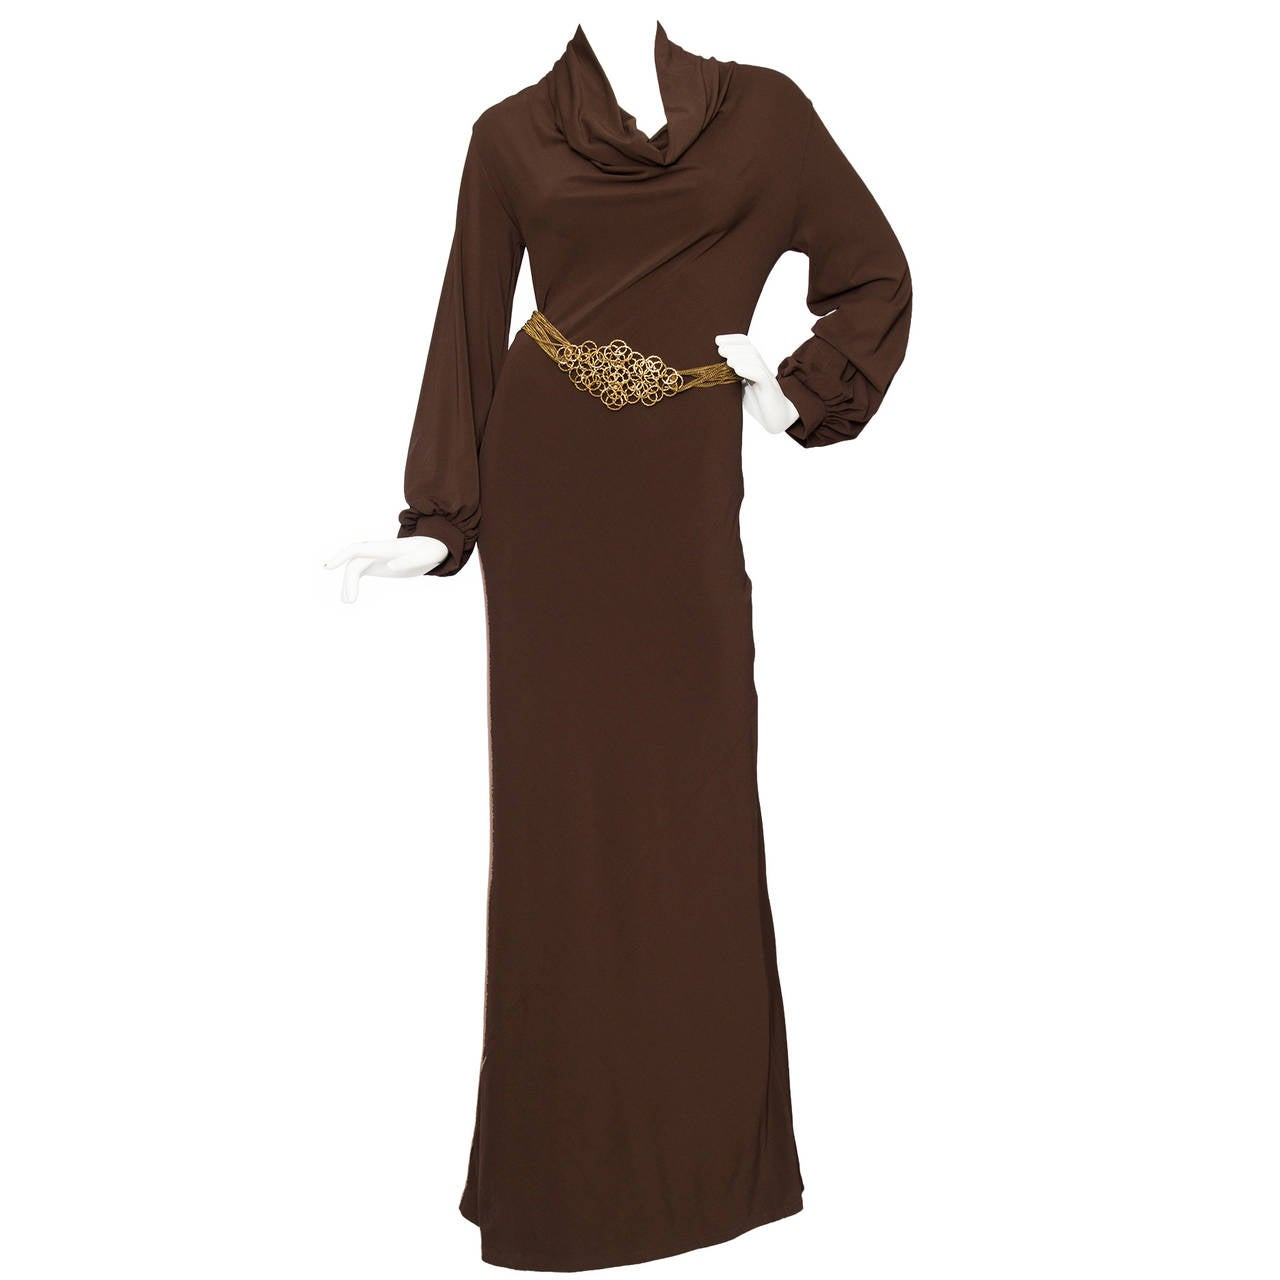 1990s Yves Saint Laurent Brown Jersey Evening Dress